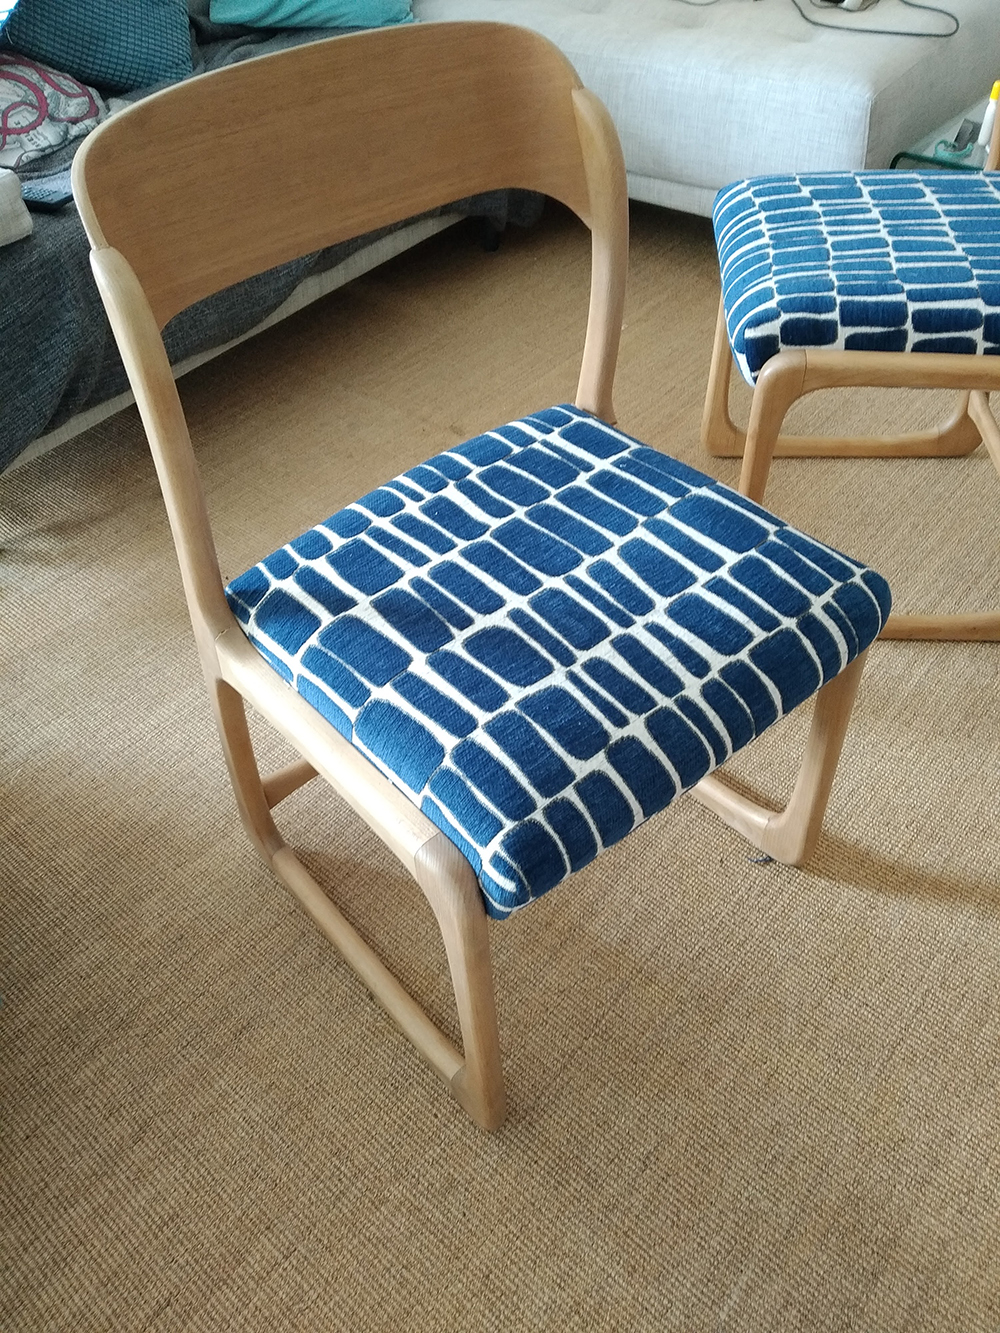 Claire Upholstered Classic chairs Using JO-32 Fabric !